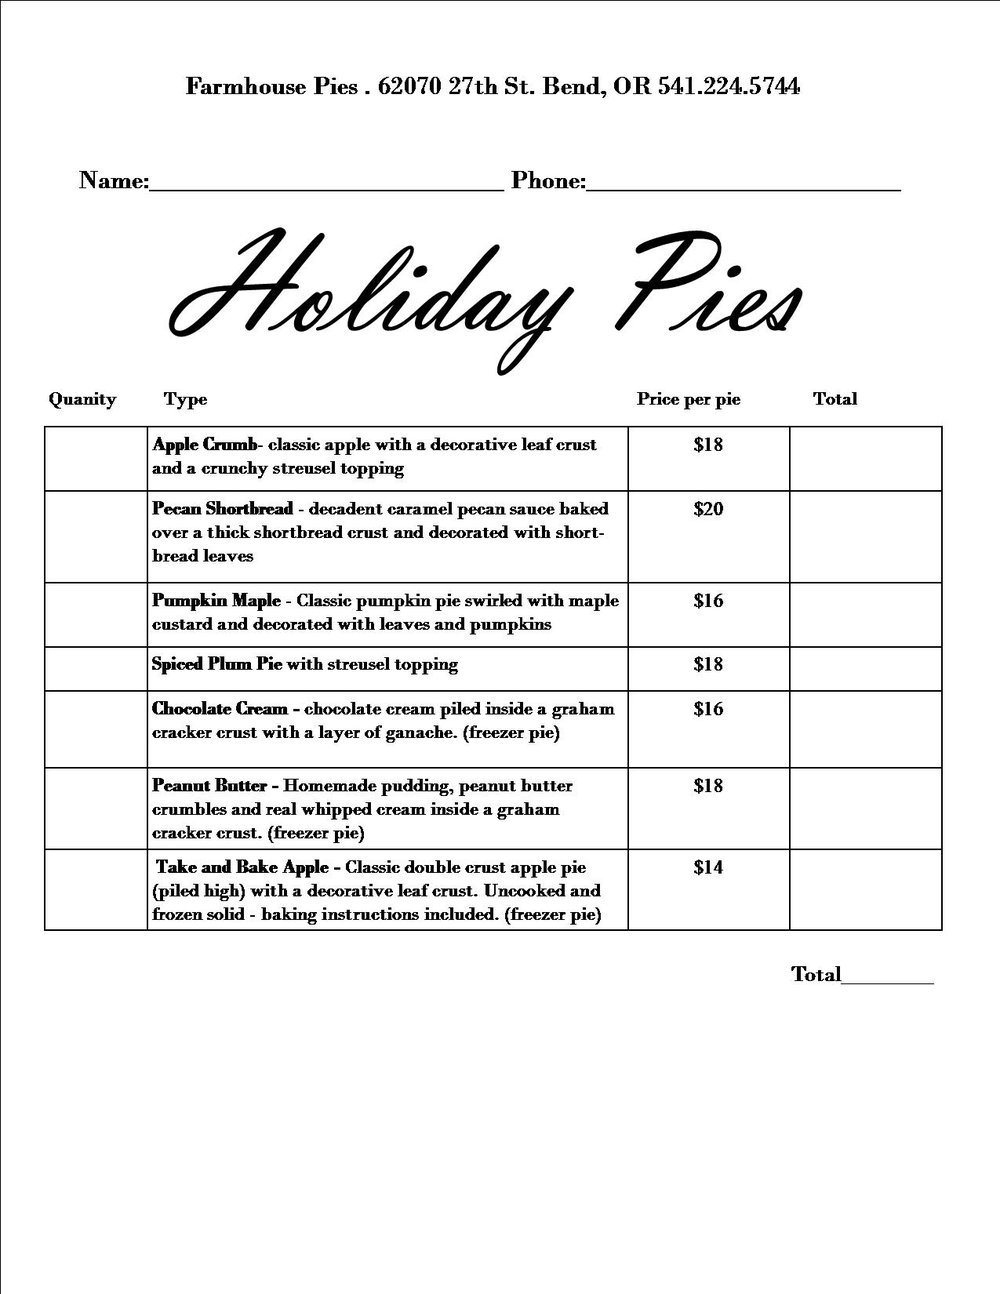 Holiday Pie Order Form Farmhouse Pies